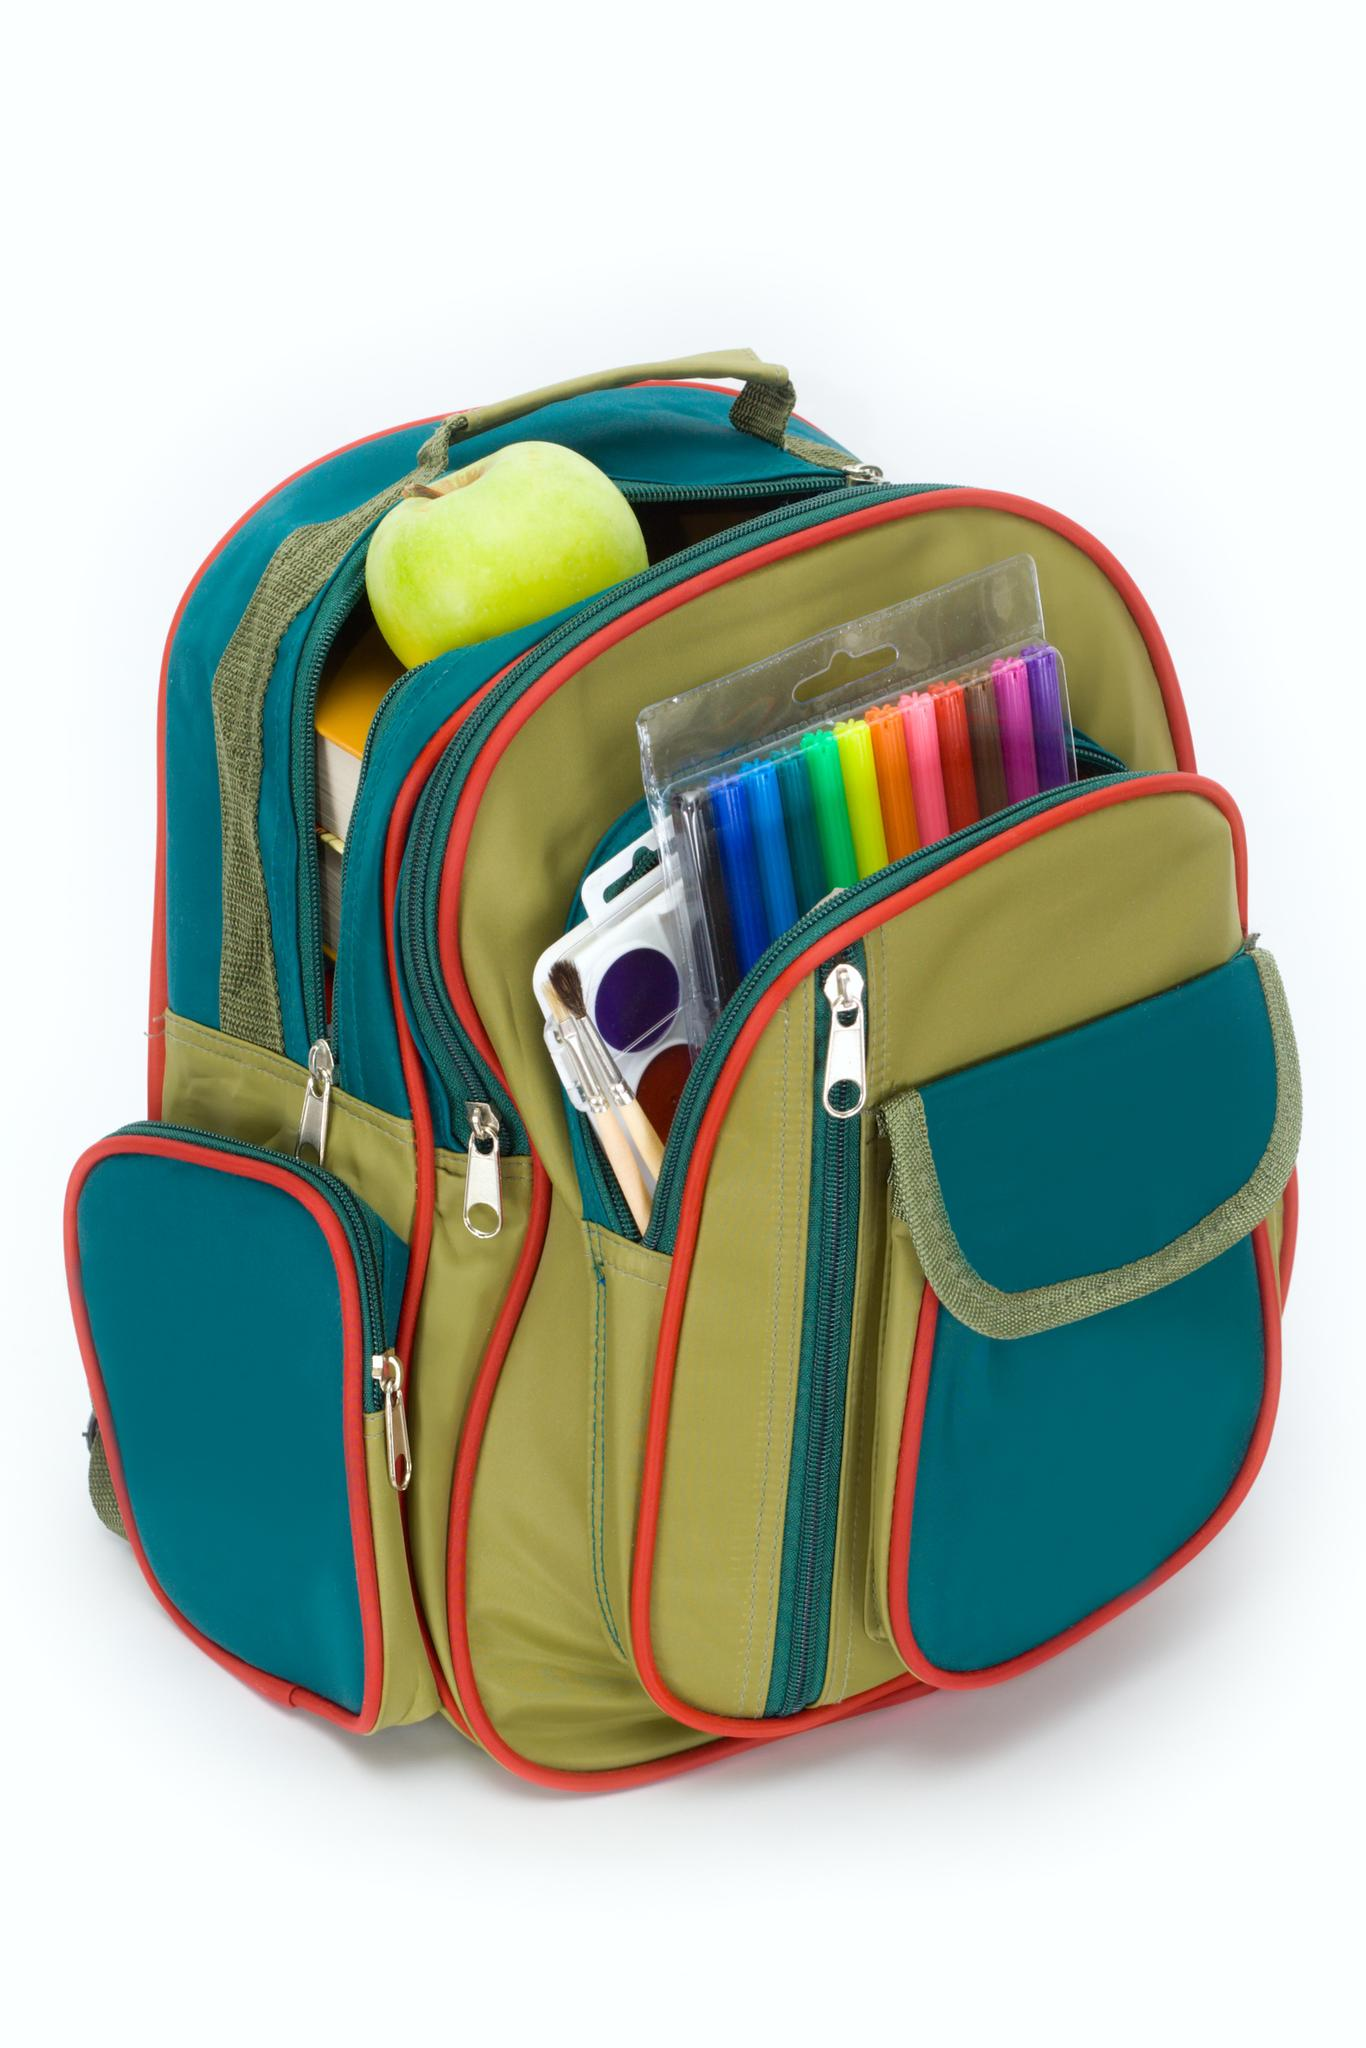 Backpacks For Back To School 2DIMpWPN